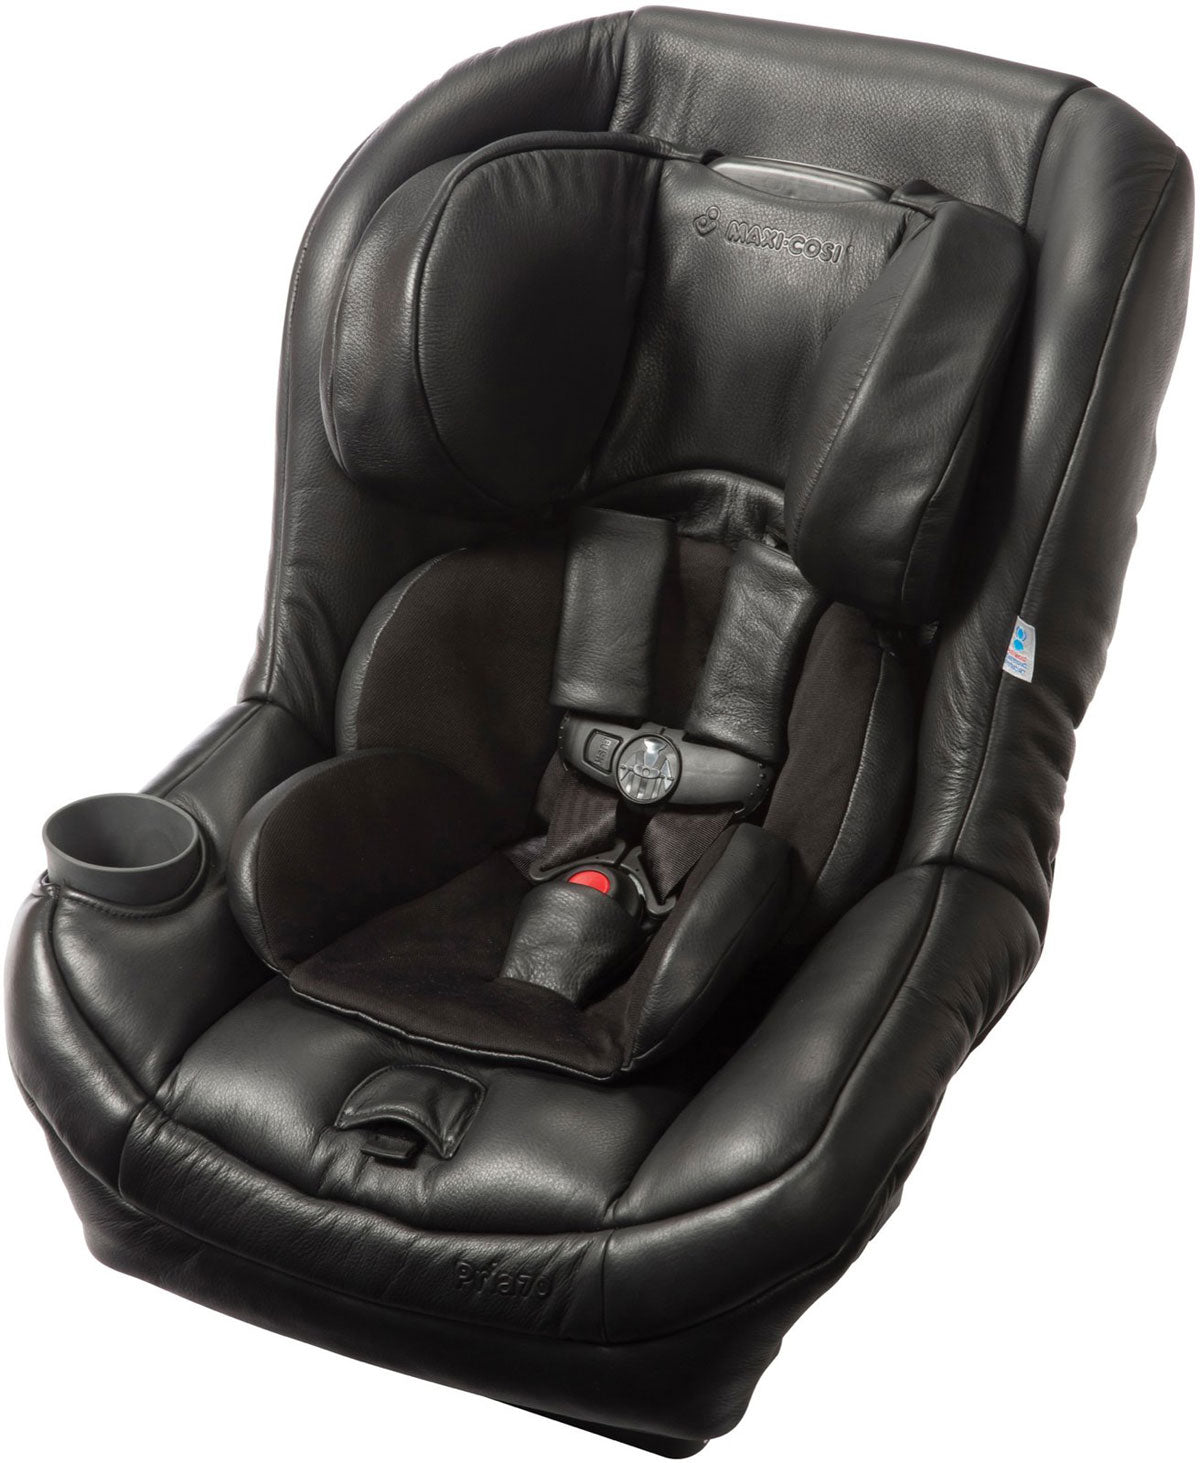 Car Seat, Baby Car Seats And Essential Accessories